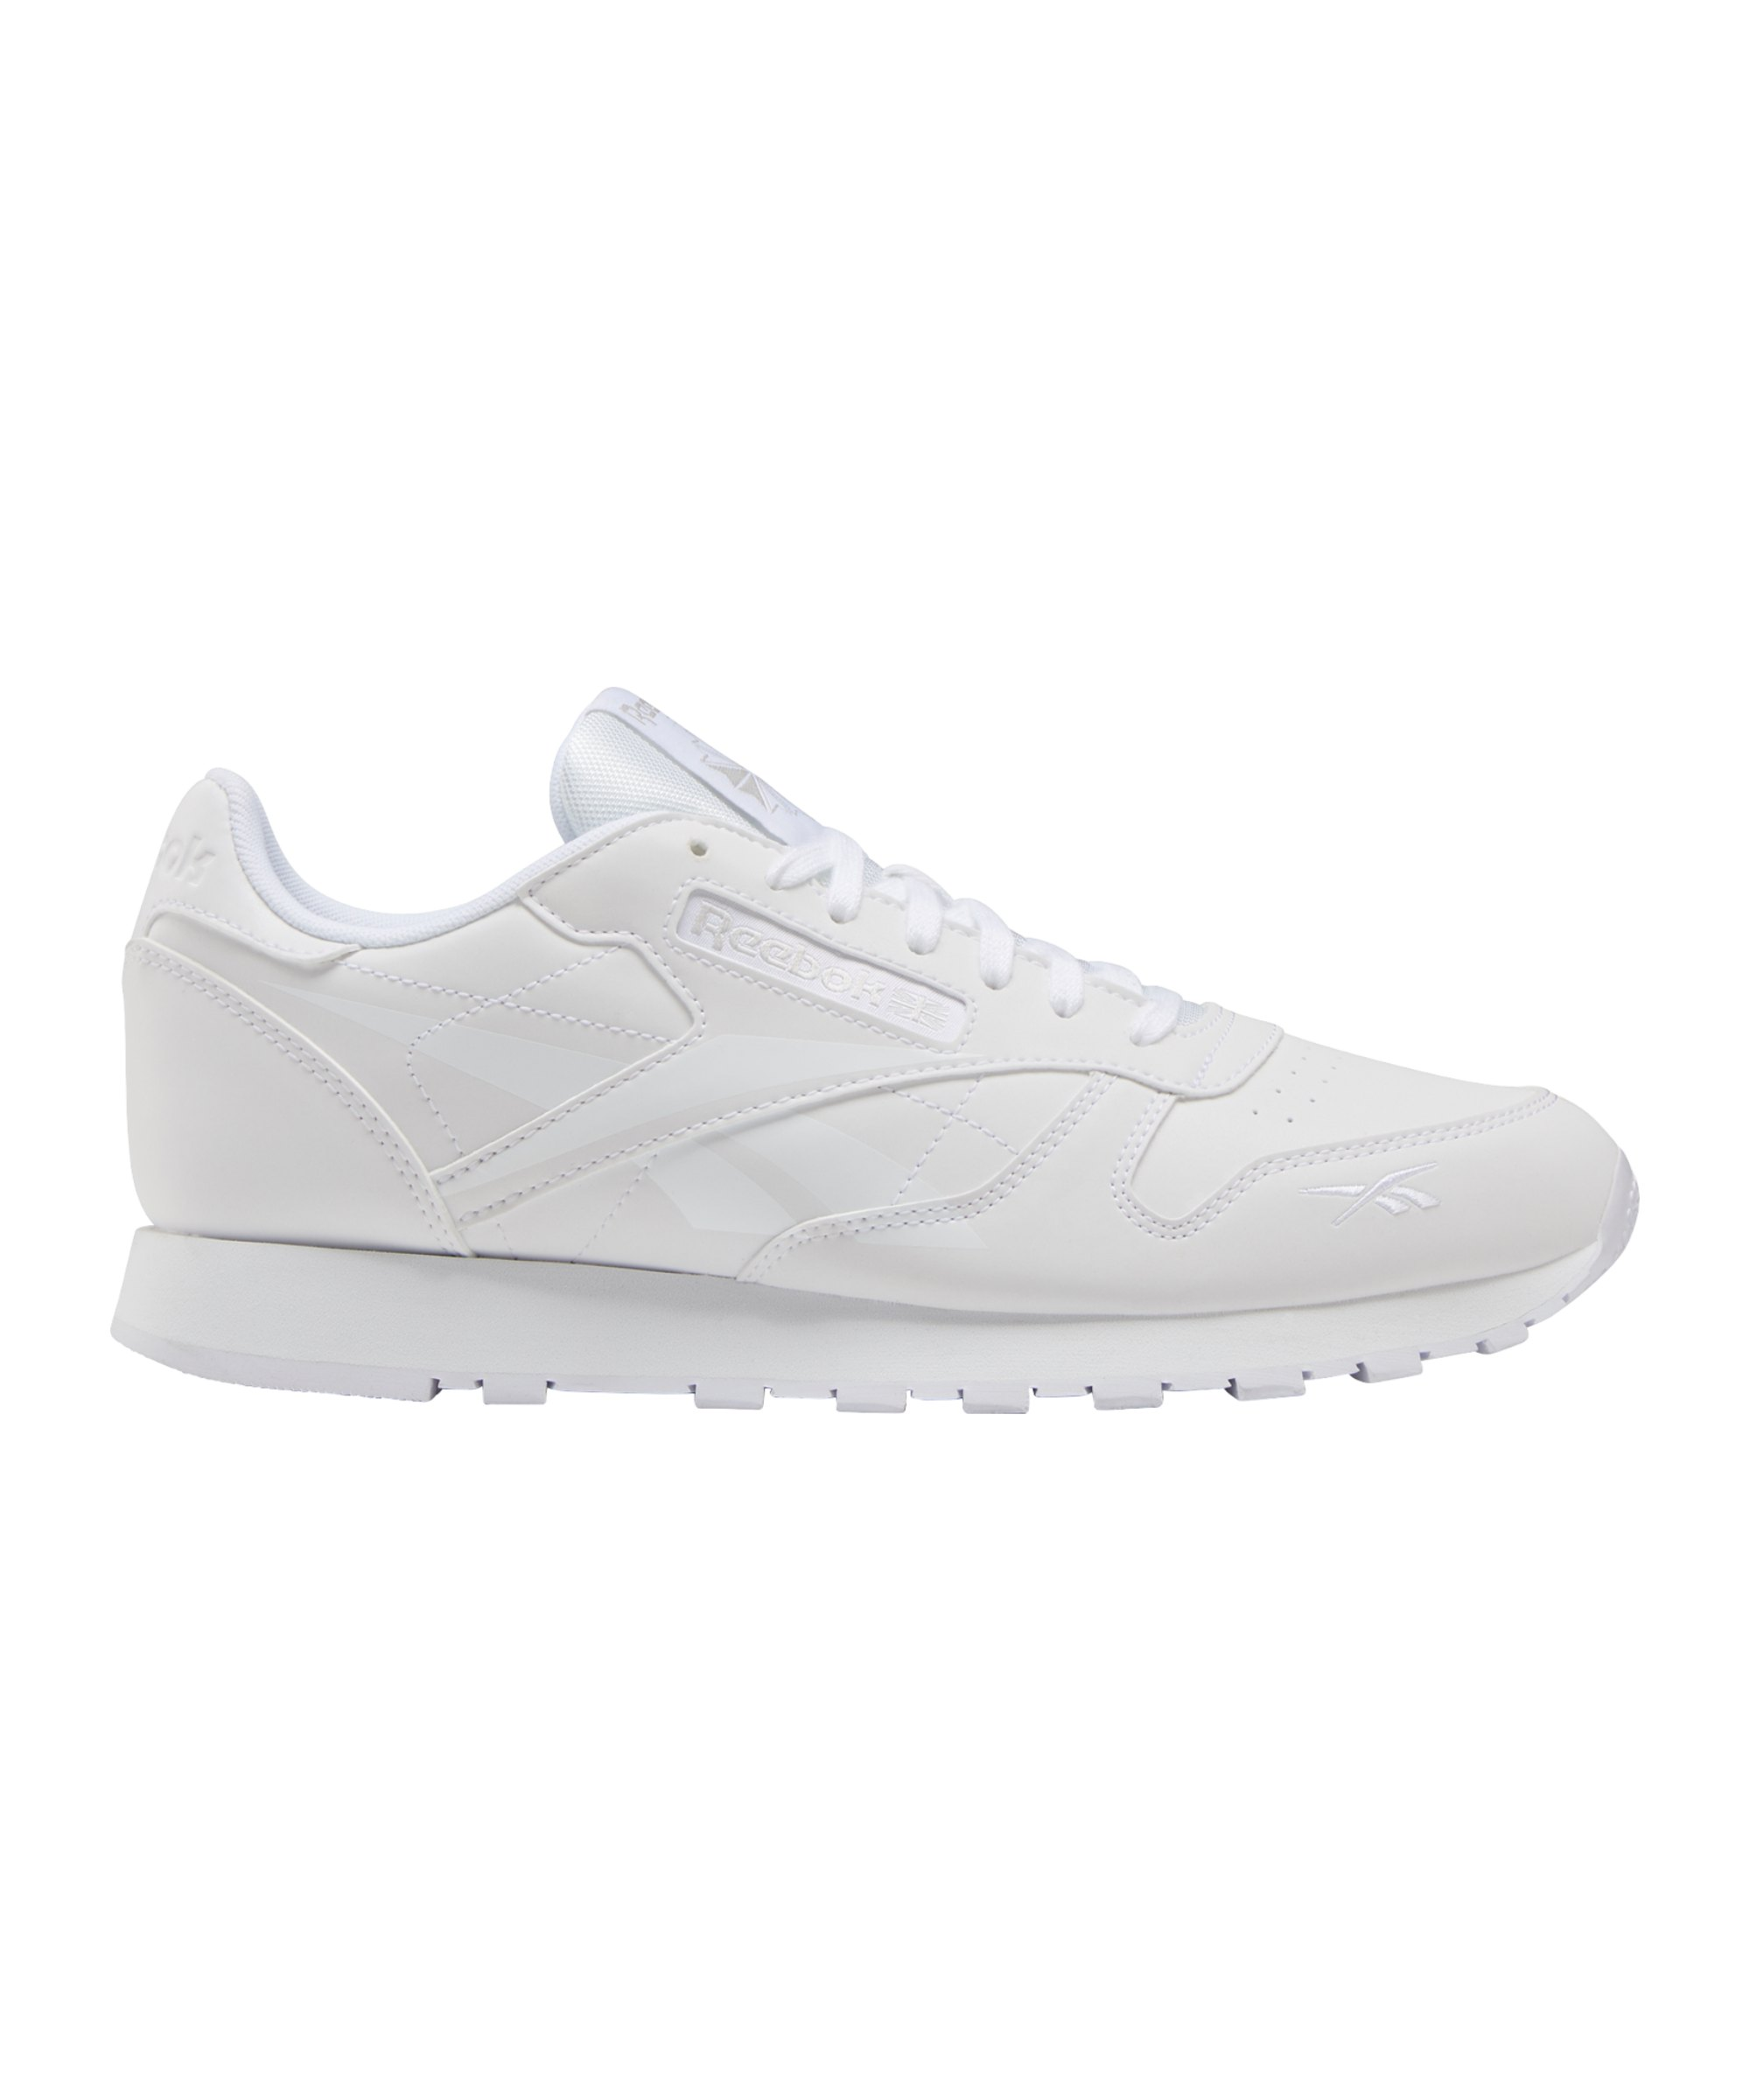 Reebok CL Leather Sneaker Weiss - weiss